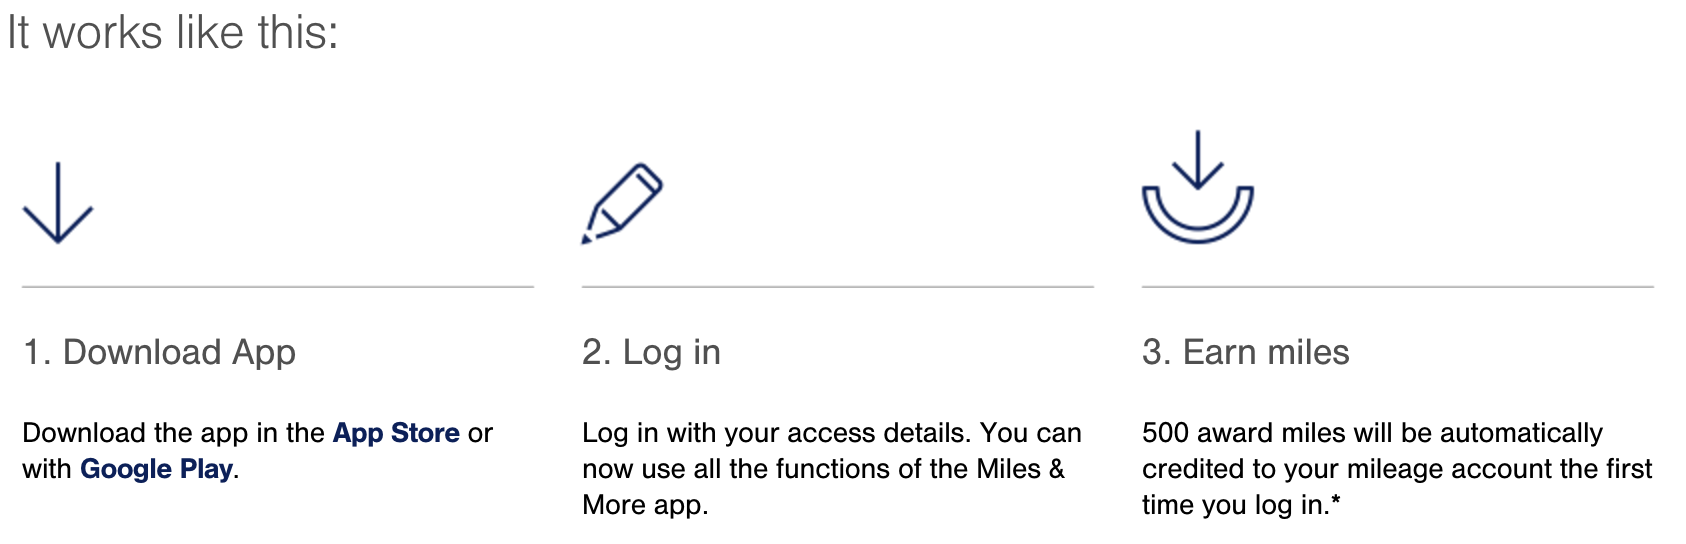 Lufthansa Miles and More App Download 500 Mile Bonus